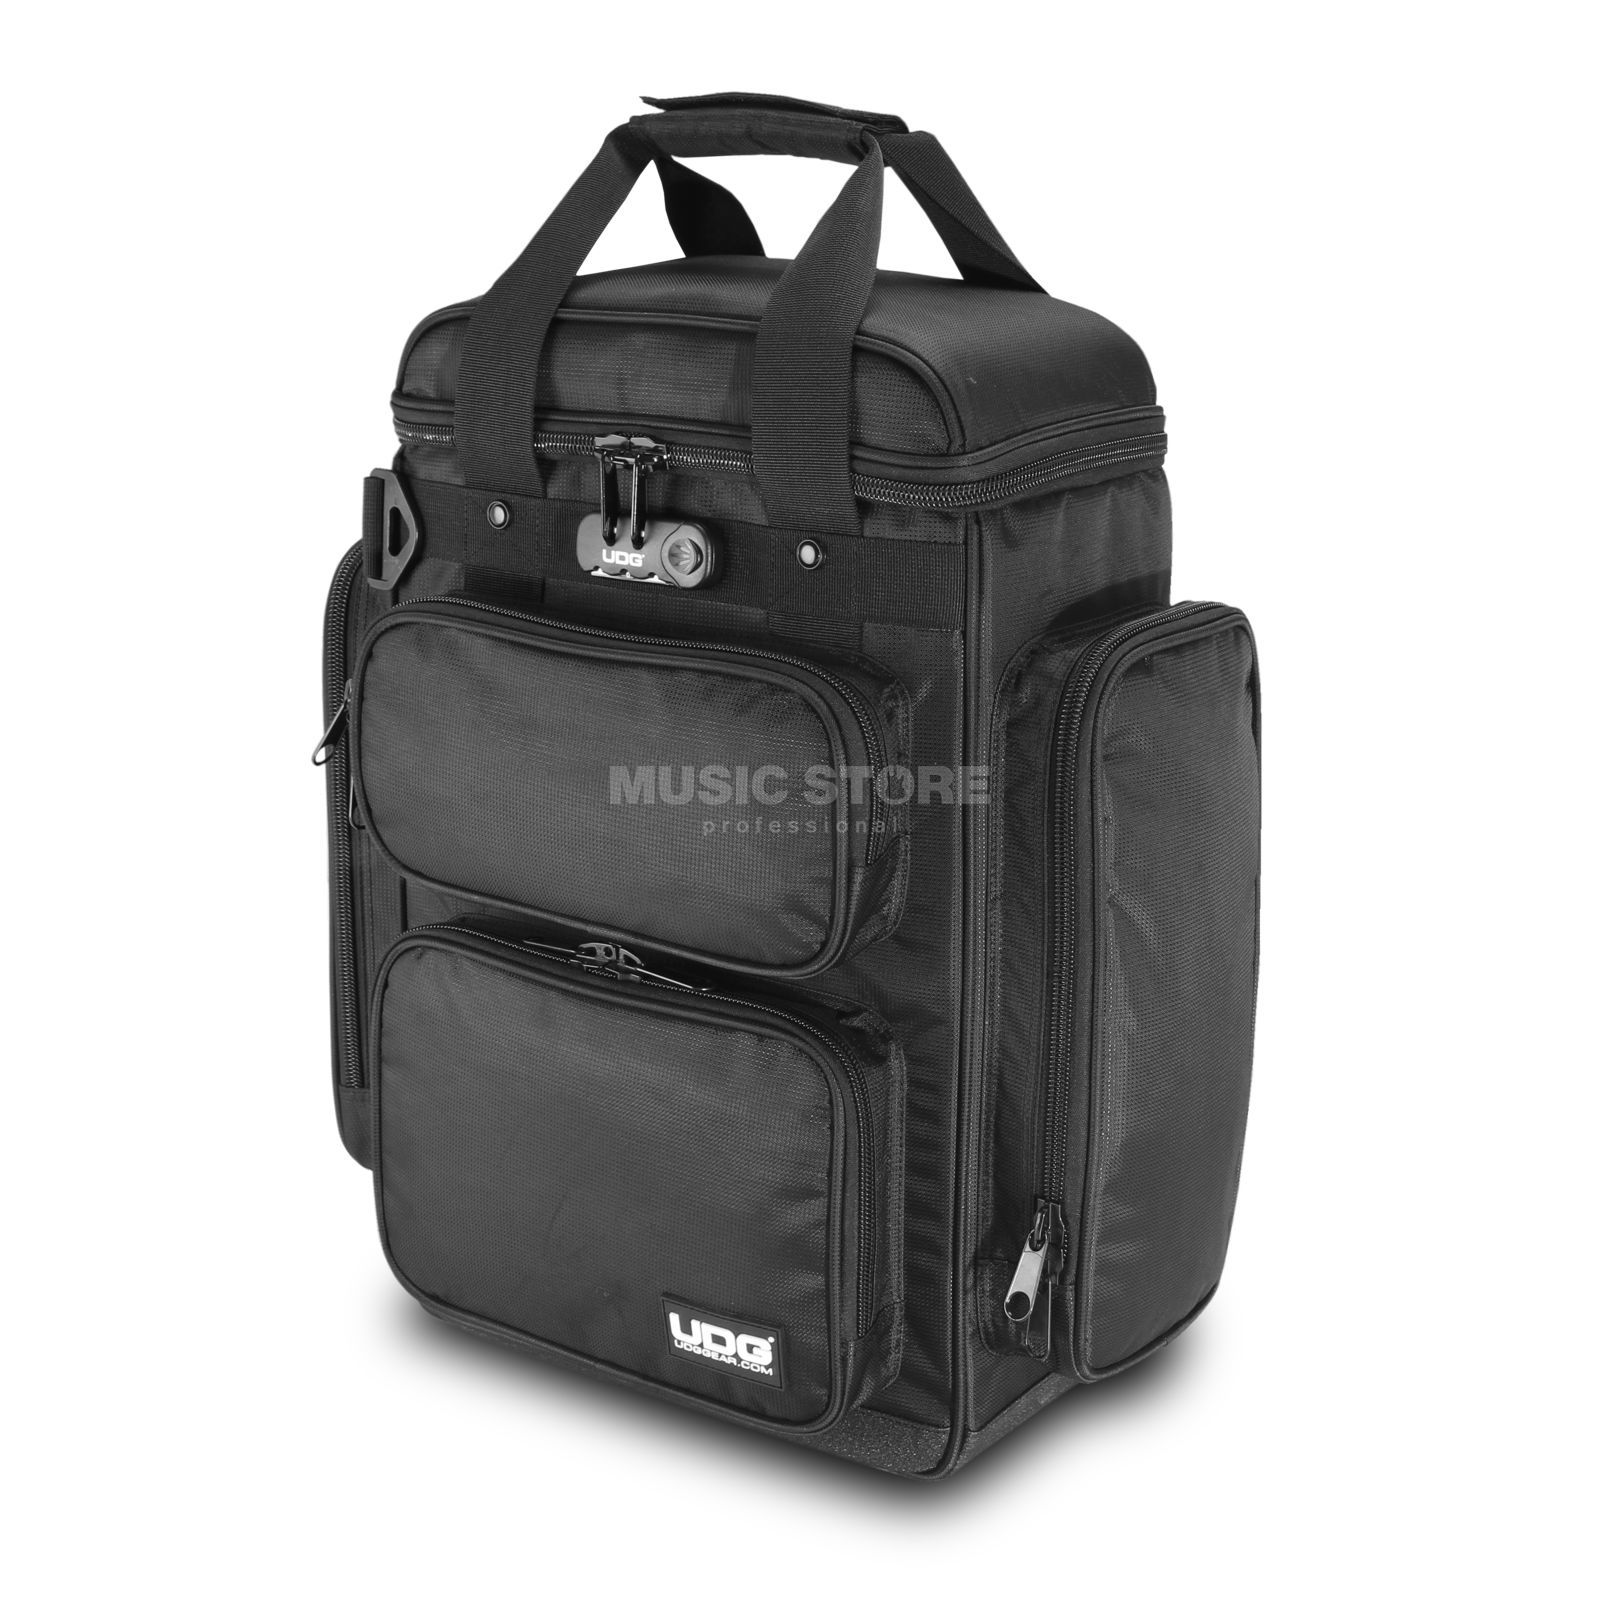 UDG ProducerBag Large Black/Orange (U9022BL/OR) Product Image